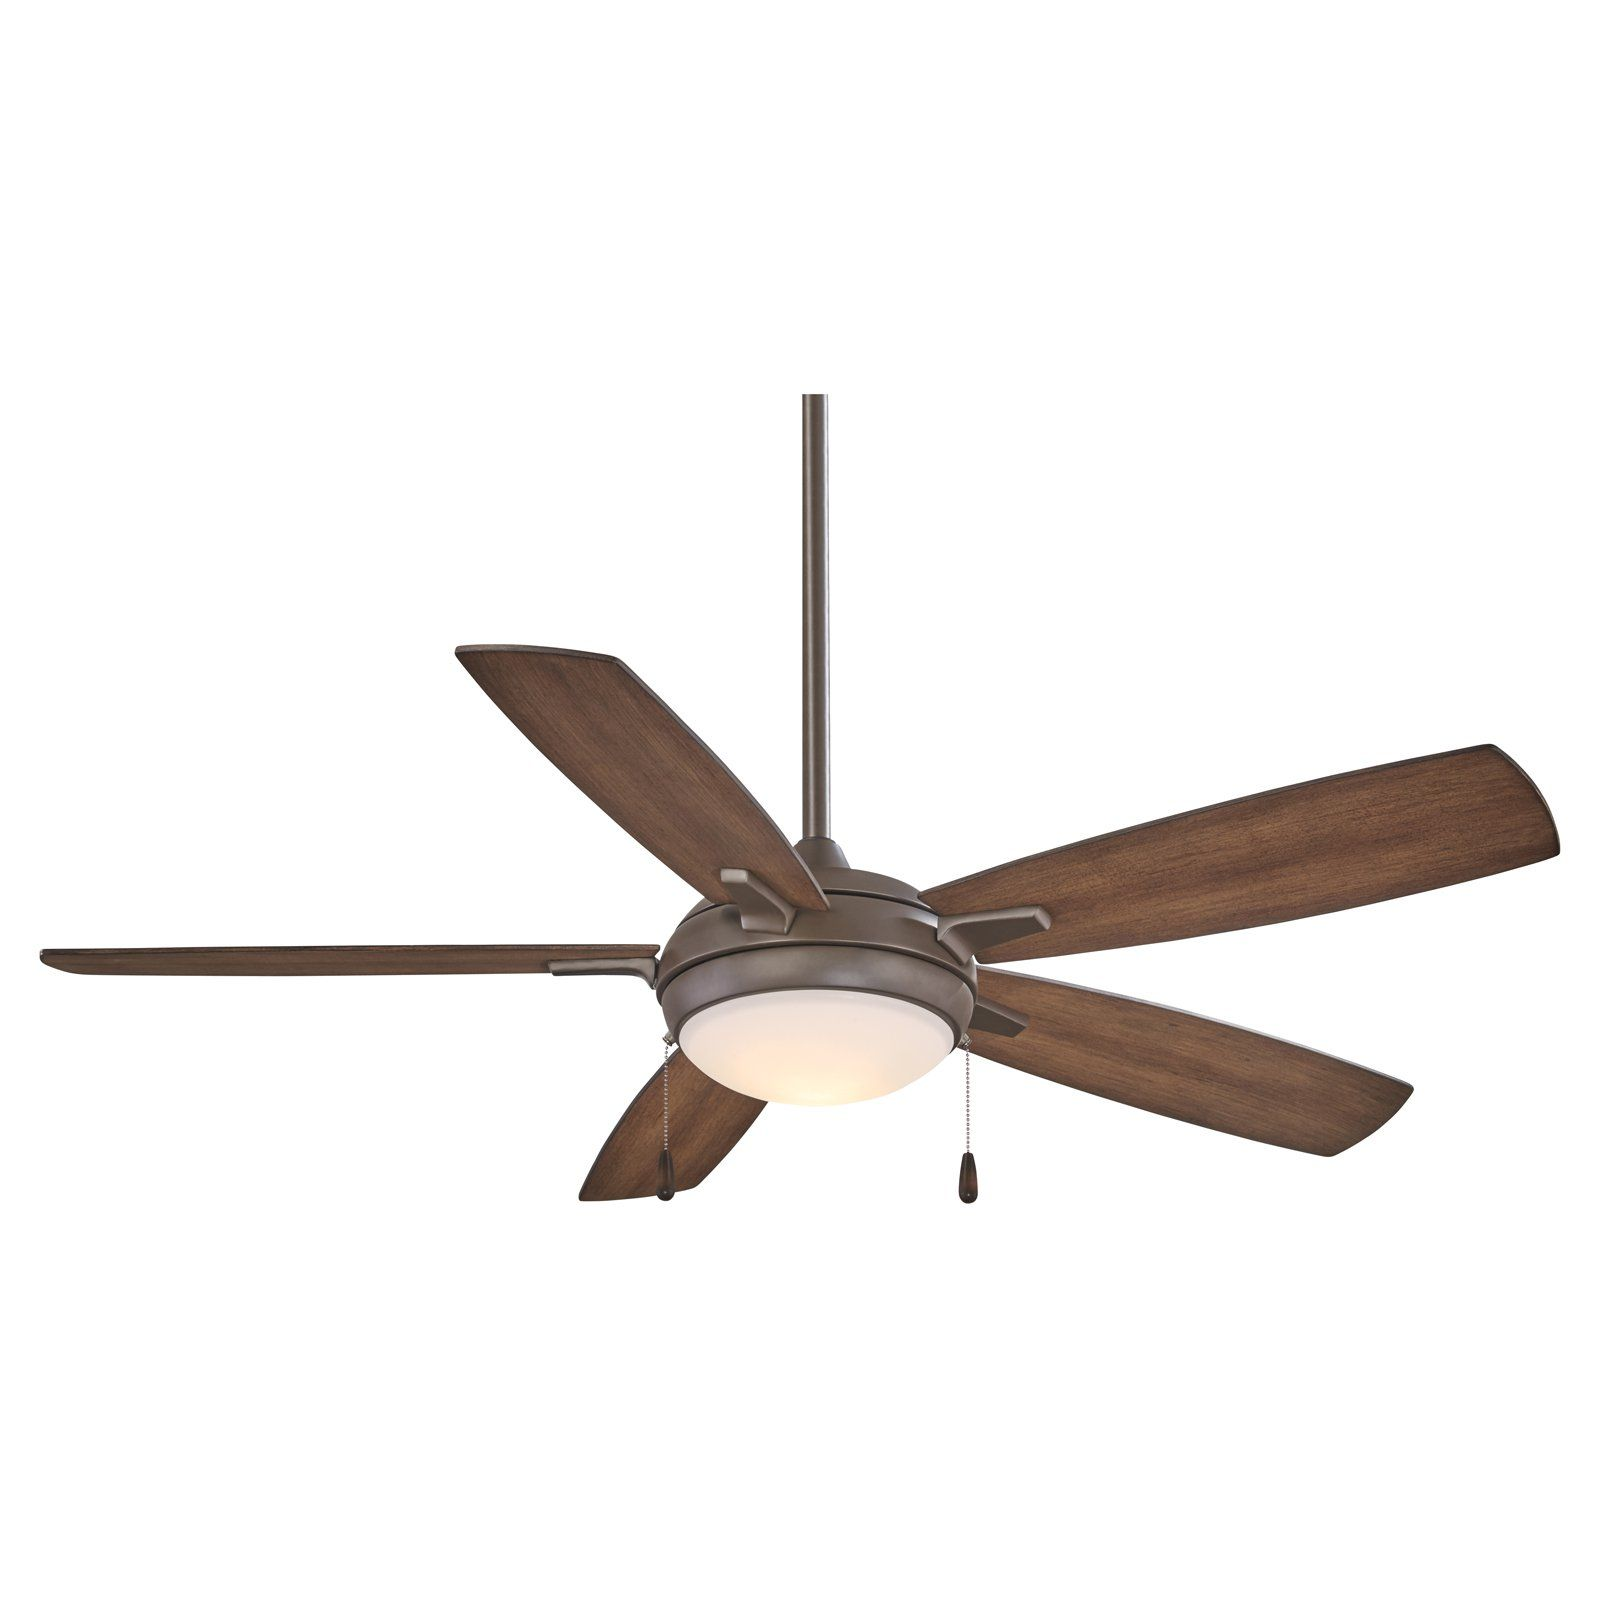 Minka Aire Lun Aire Ceiling Fan With Light Ceiling Fan Bronze